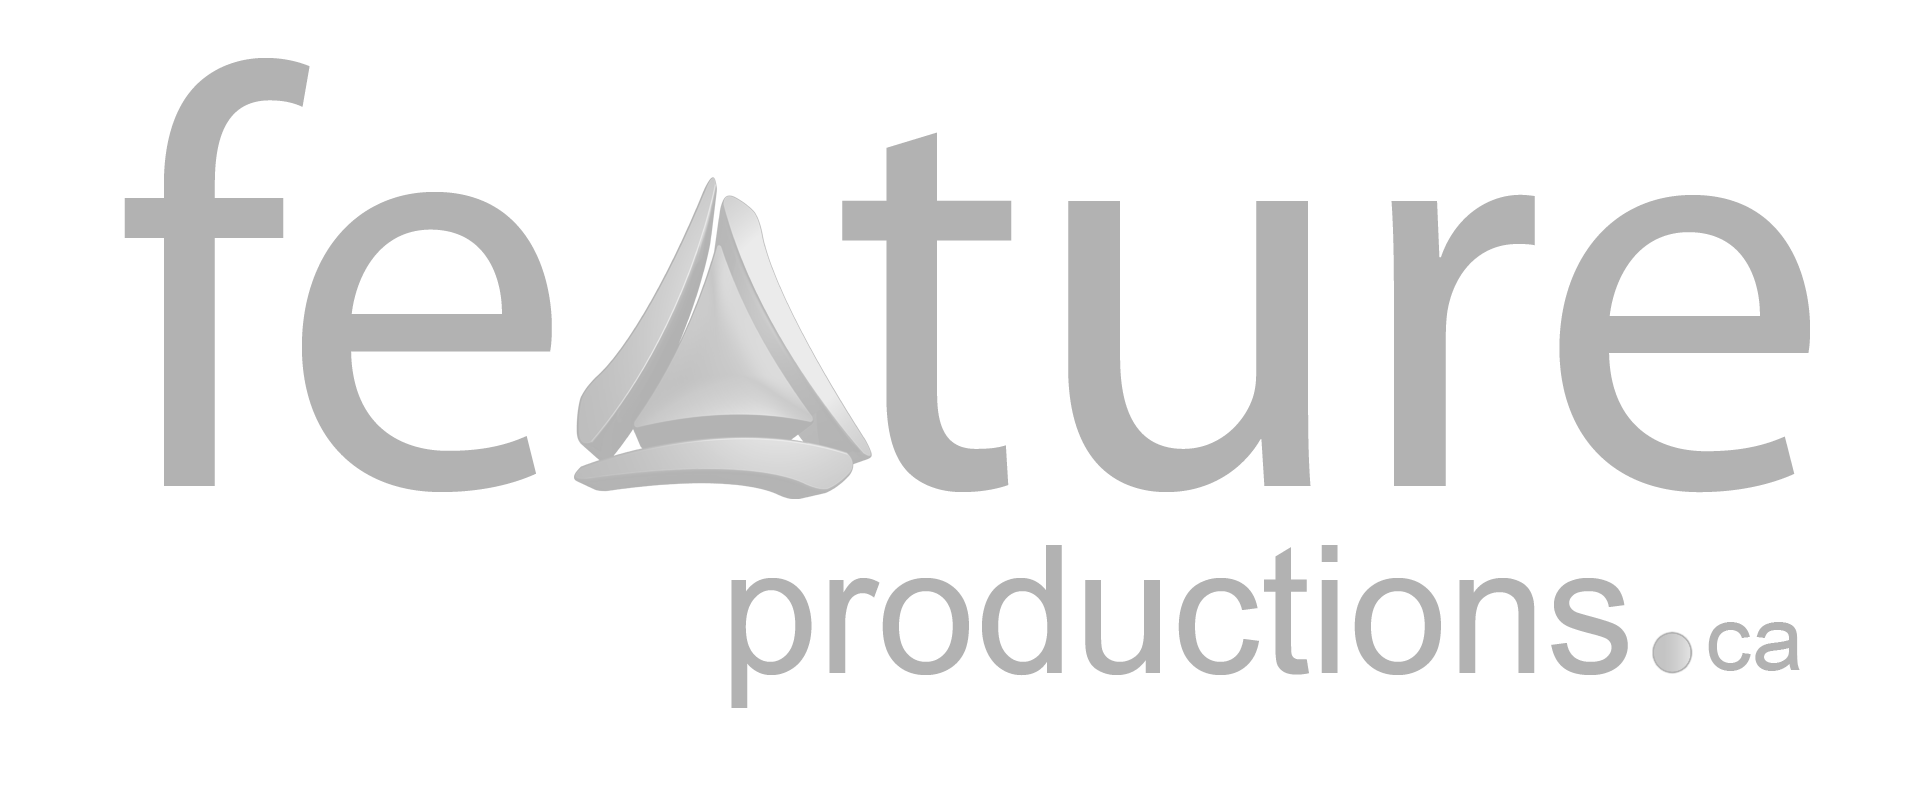 featureproductions.ca logo_black.png